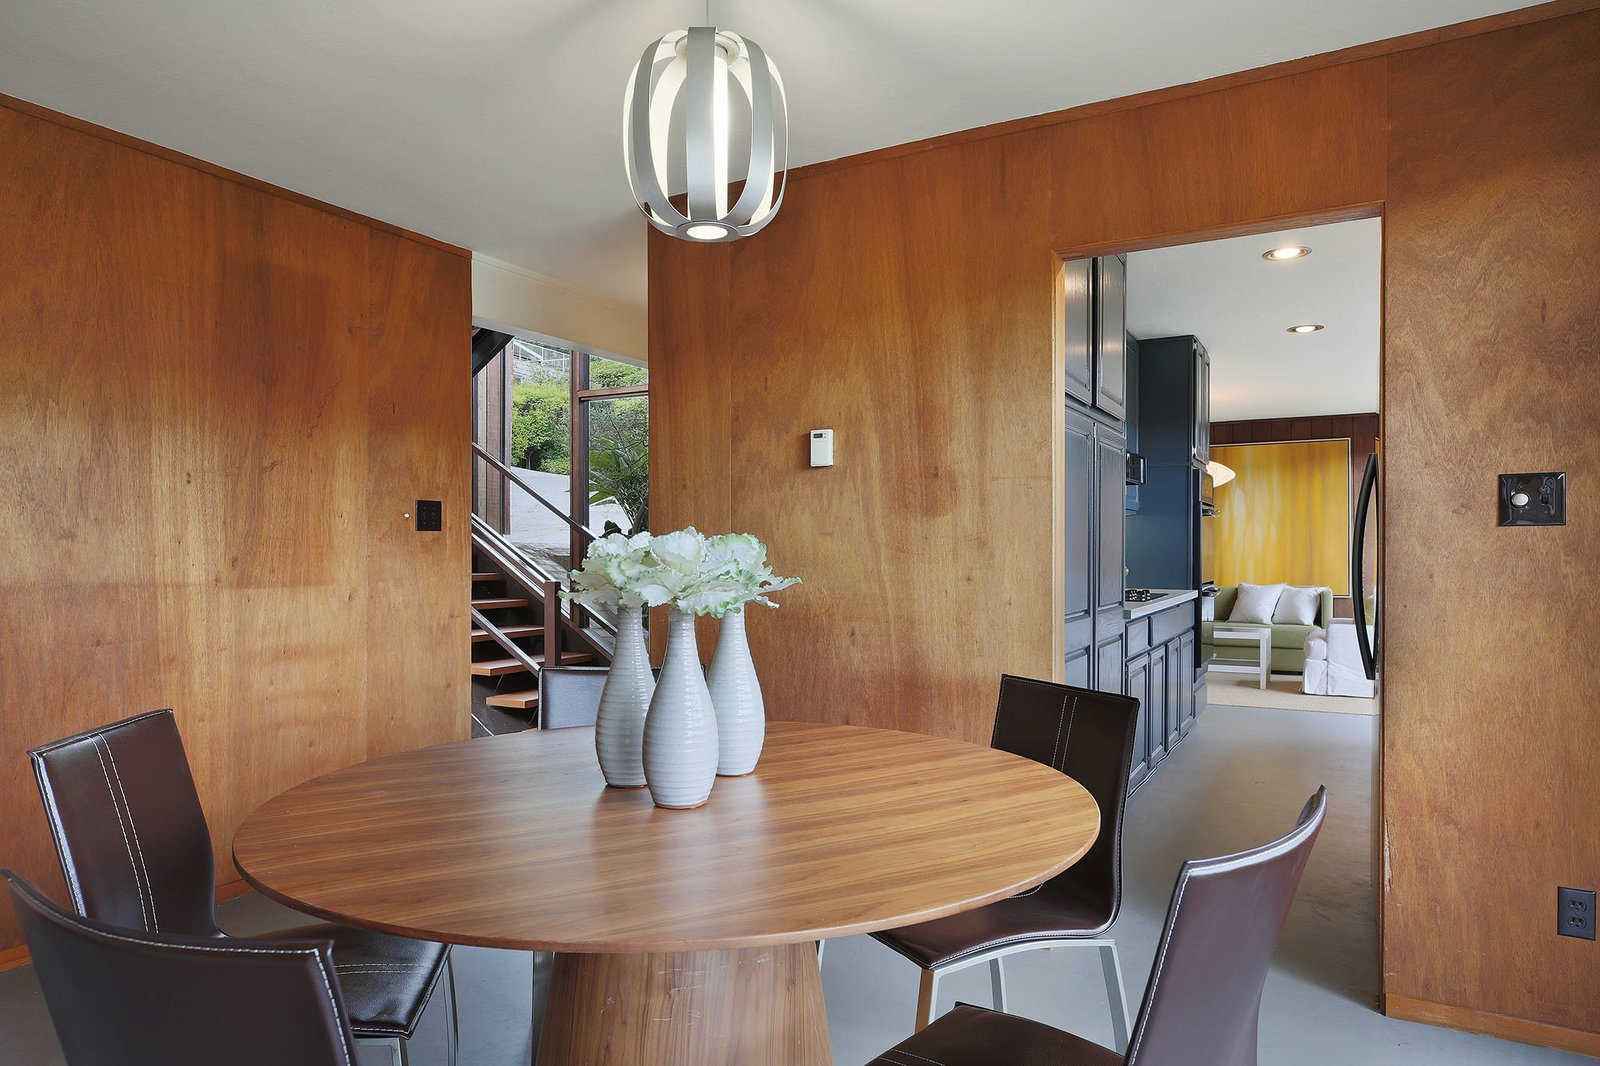 Dining Room, Pendant Lighting, Table, Chair, Recessed Lighting, and Concrete Floor The dining room area.  Photo 6 of 15 in This Rare Two-Story Eichler Has Just Been Listed For $1.35M